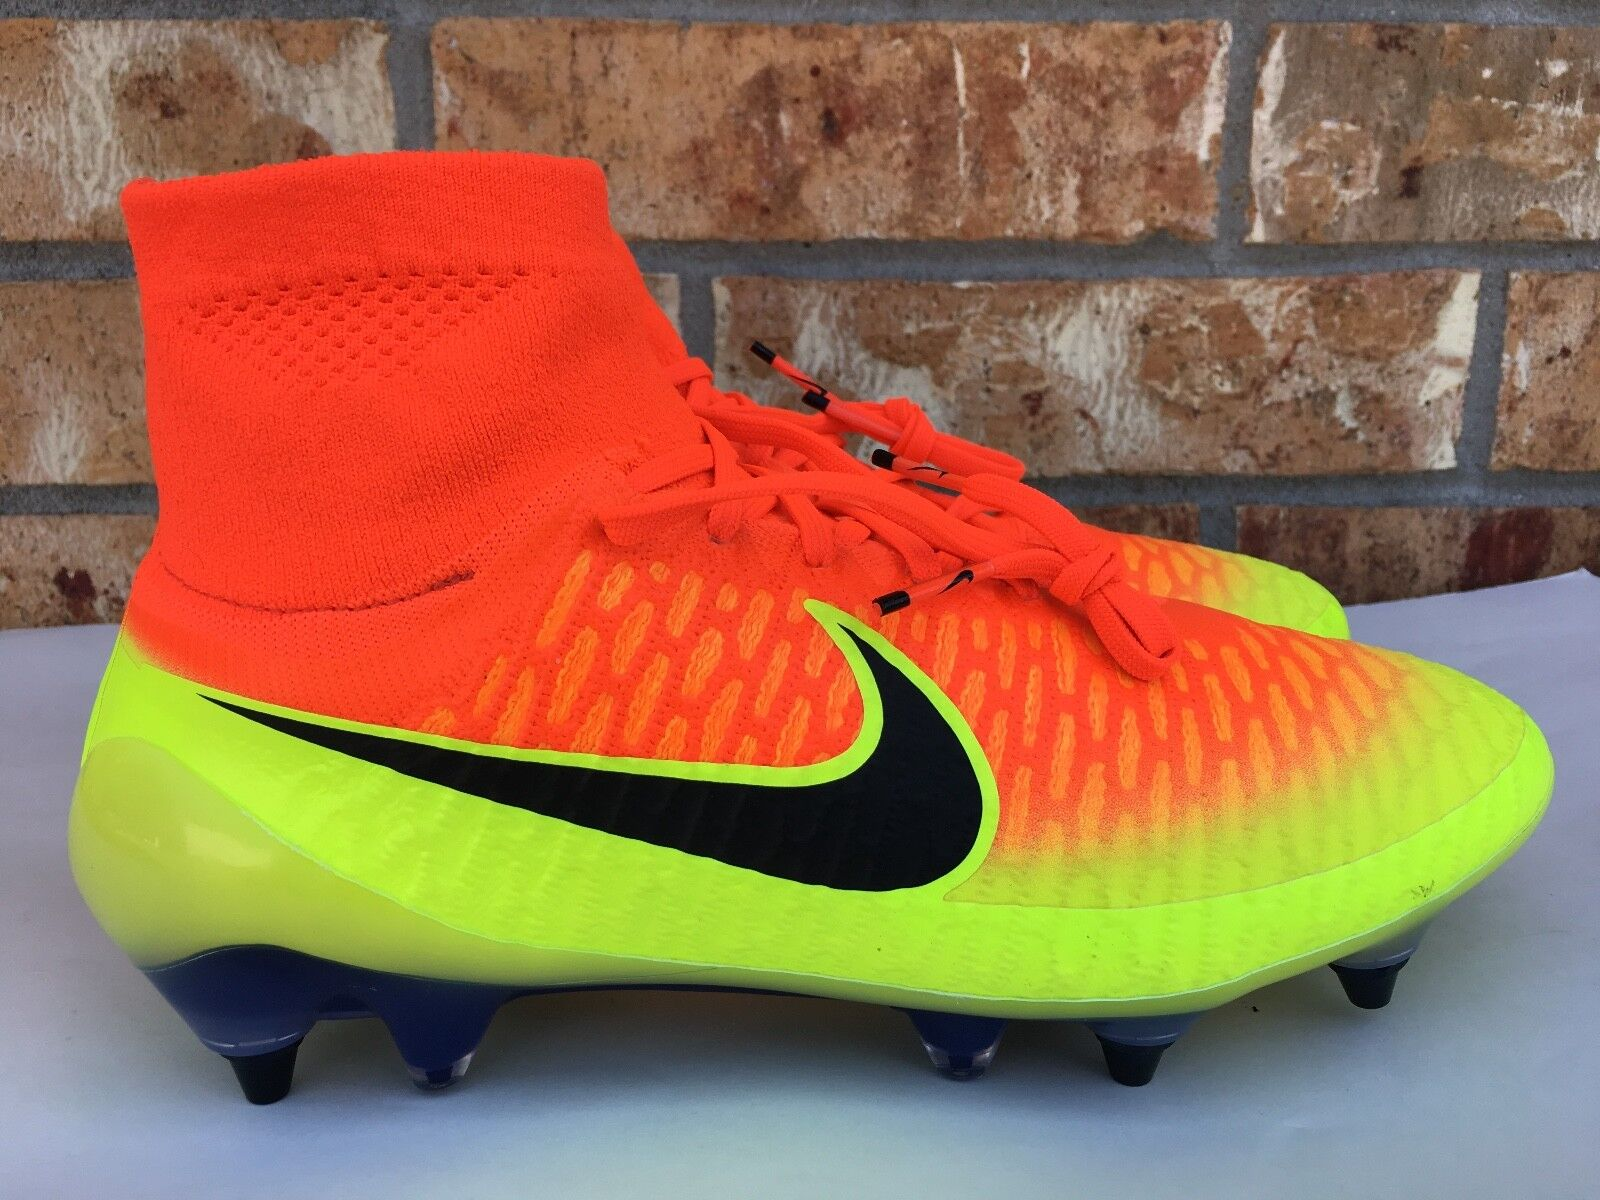 Men's Nike Magista Obra SG-PRO FG Soccer Cleats Crimson Black Volt 641325-808